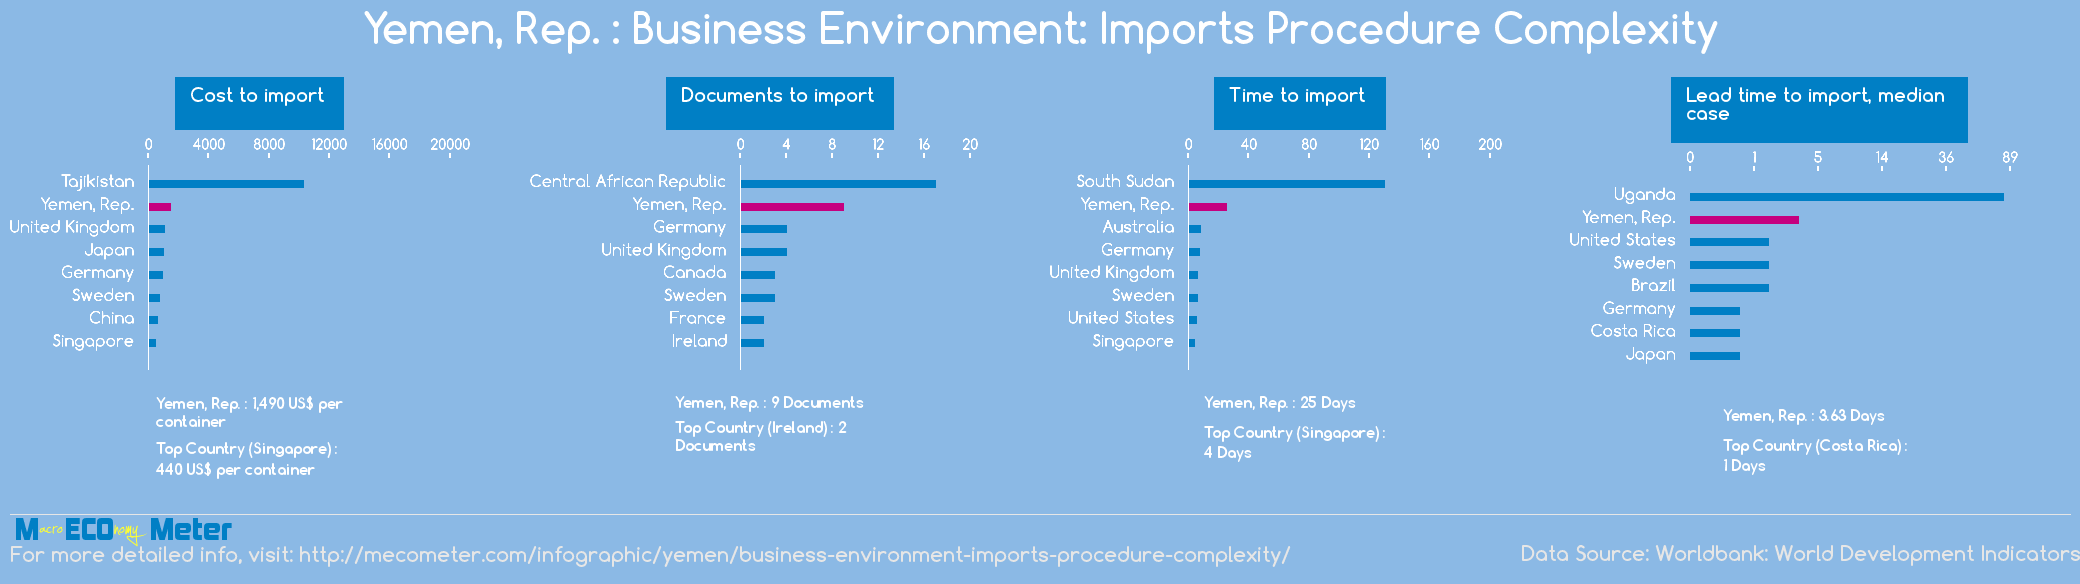 Yemen, Rep. : Business Environment: Imports Procedure Complexity